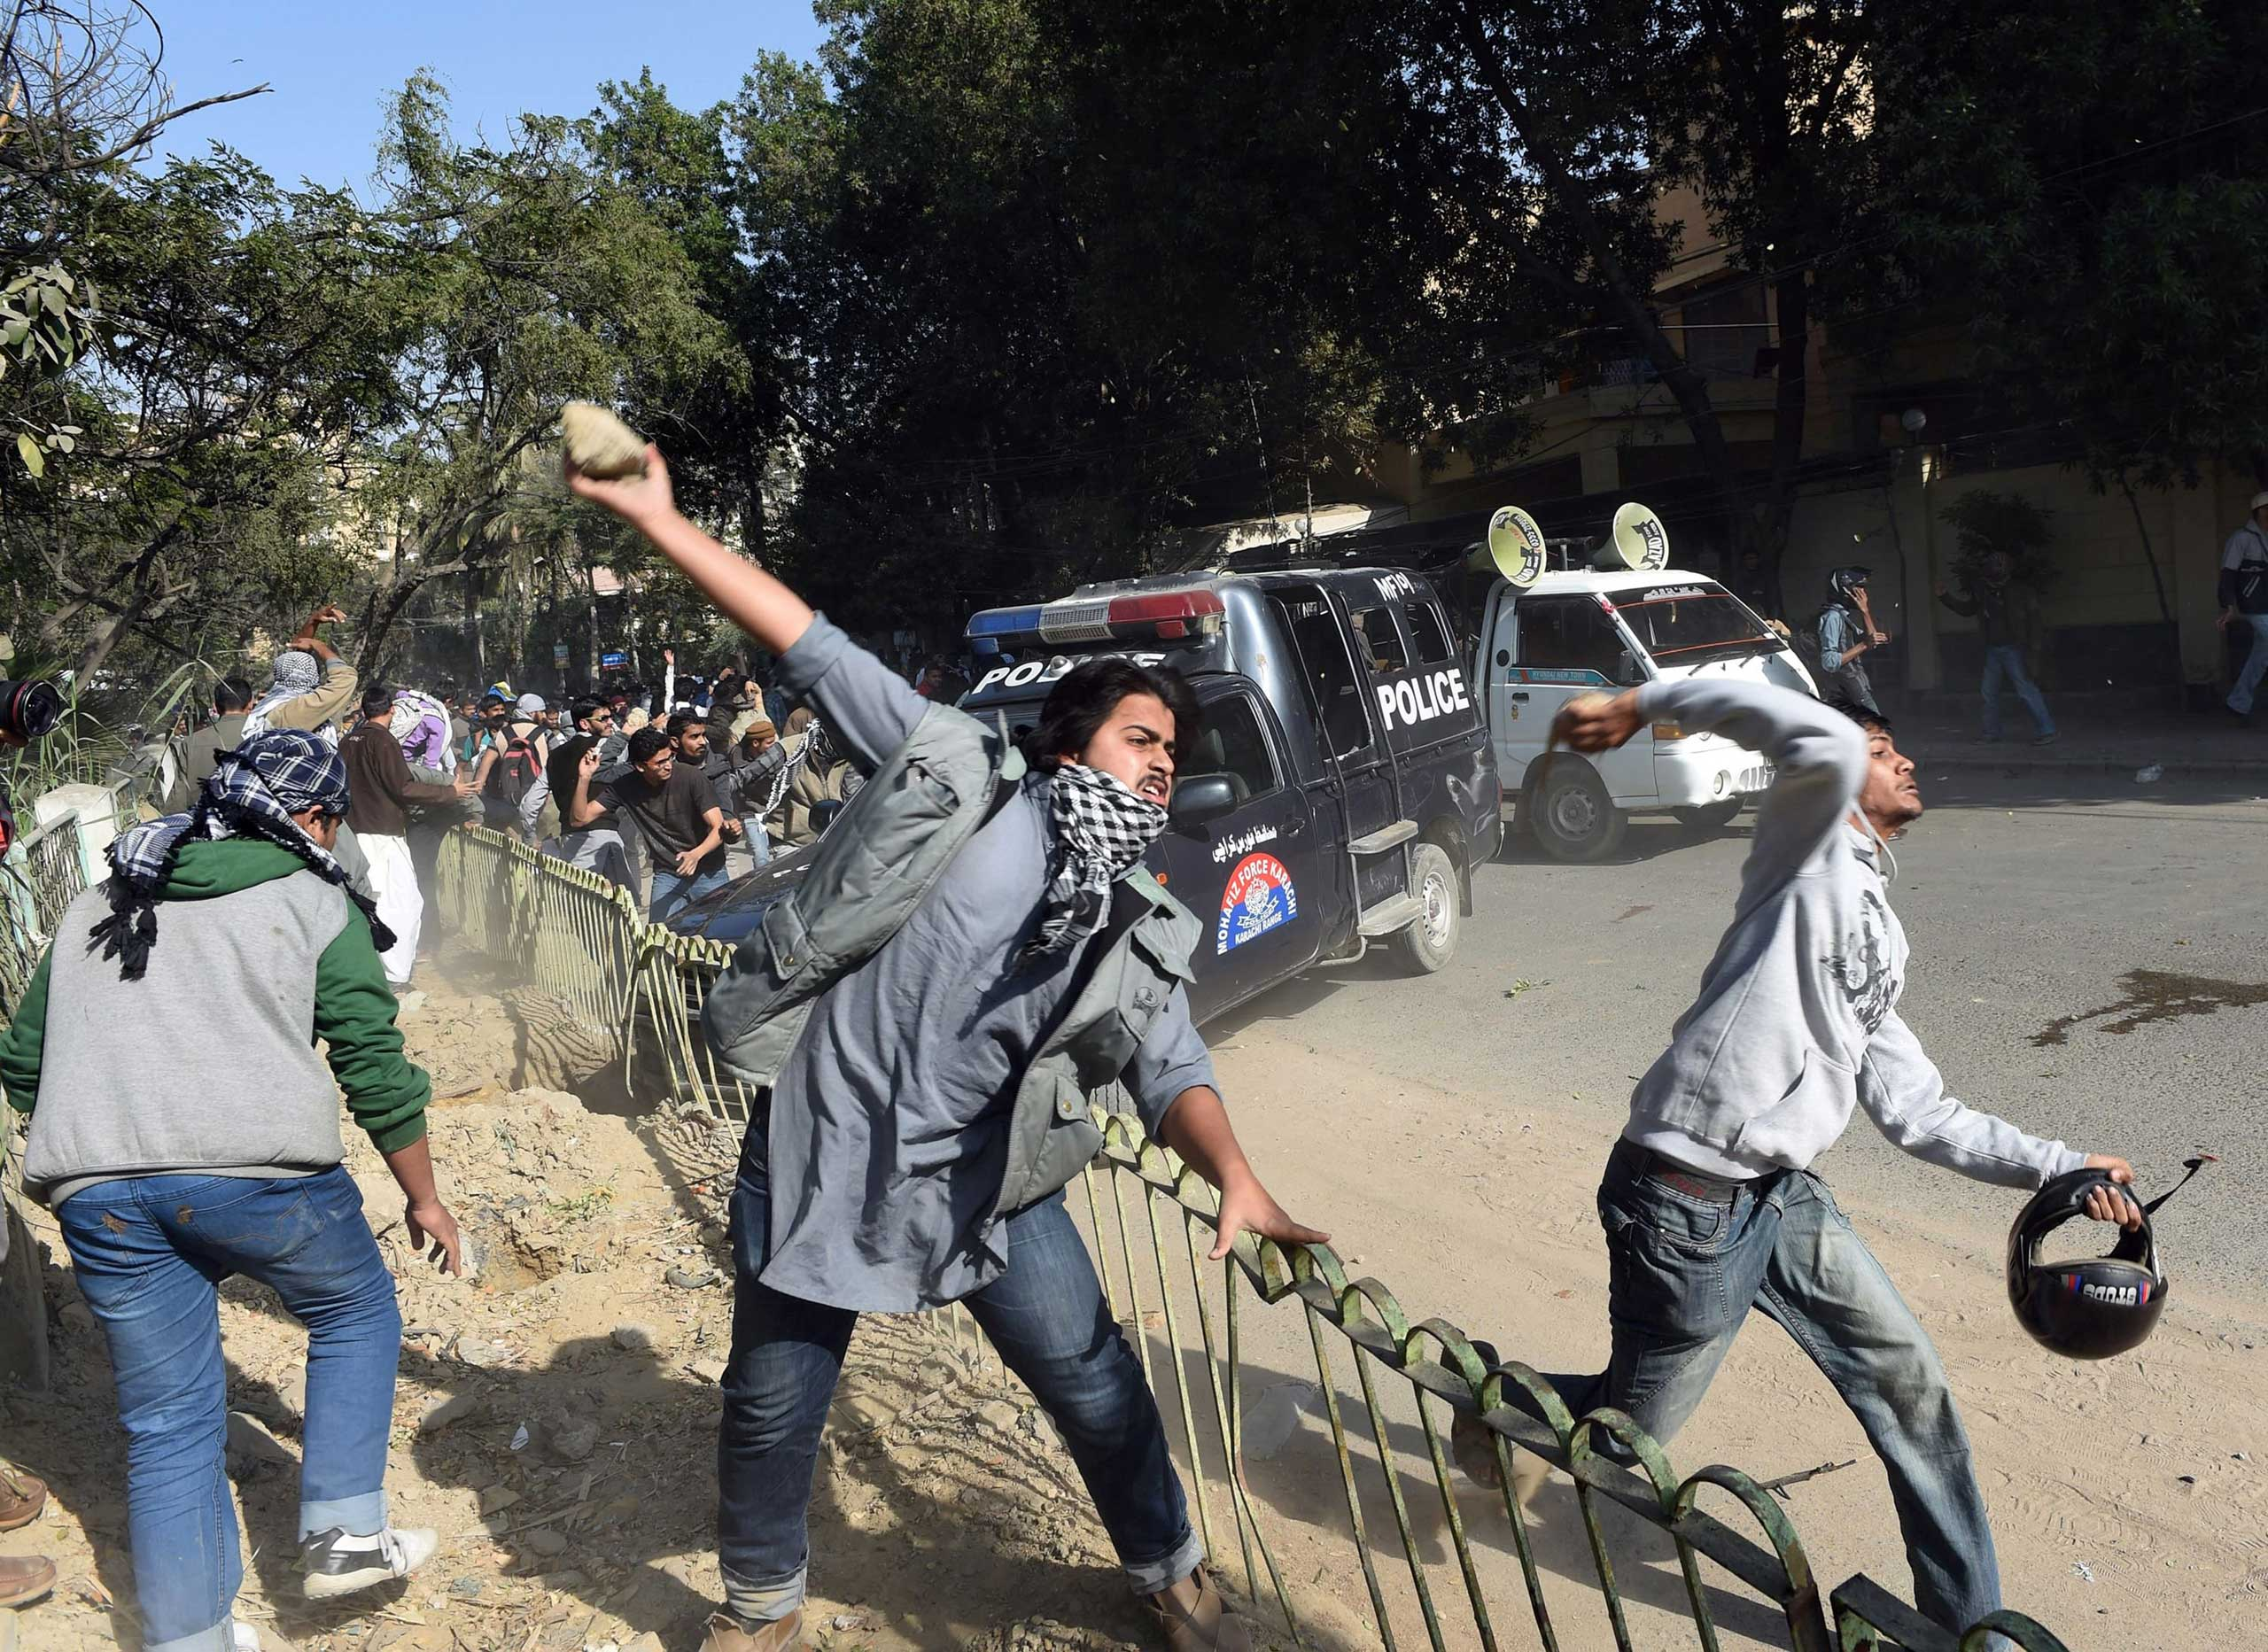 Pakistani activists of the Jamaat-e-Islami religious party throw stones toward riot police during a protest against the printing of satirical sketches of the Prophet Muhammad by French magazine Charlie Hebdo in Karachi, Pakistan on Jan.16, 2015.